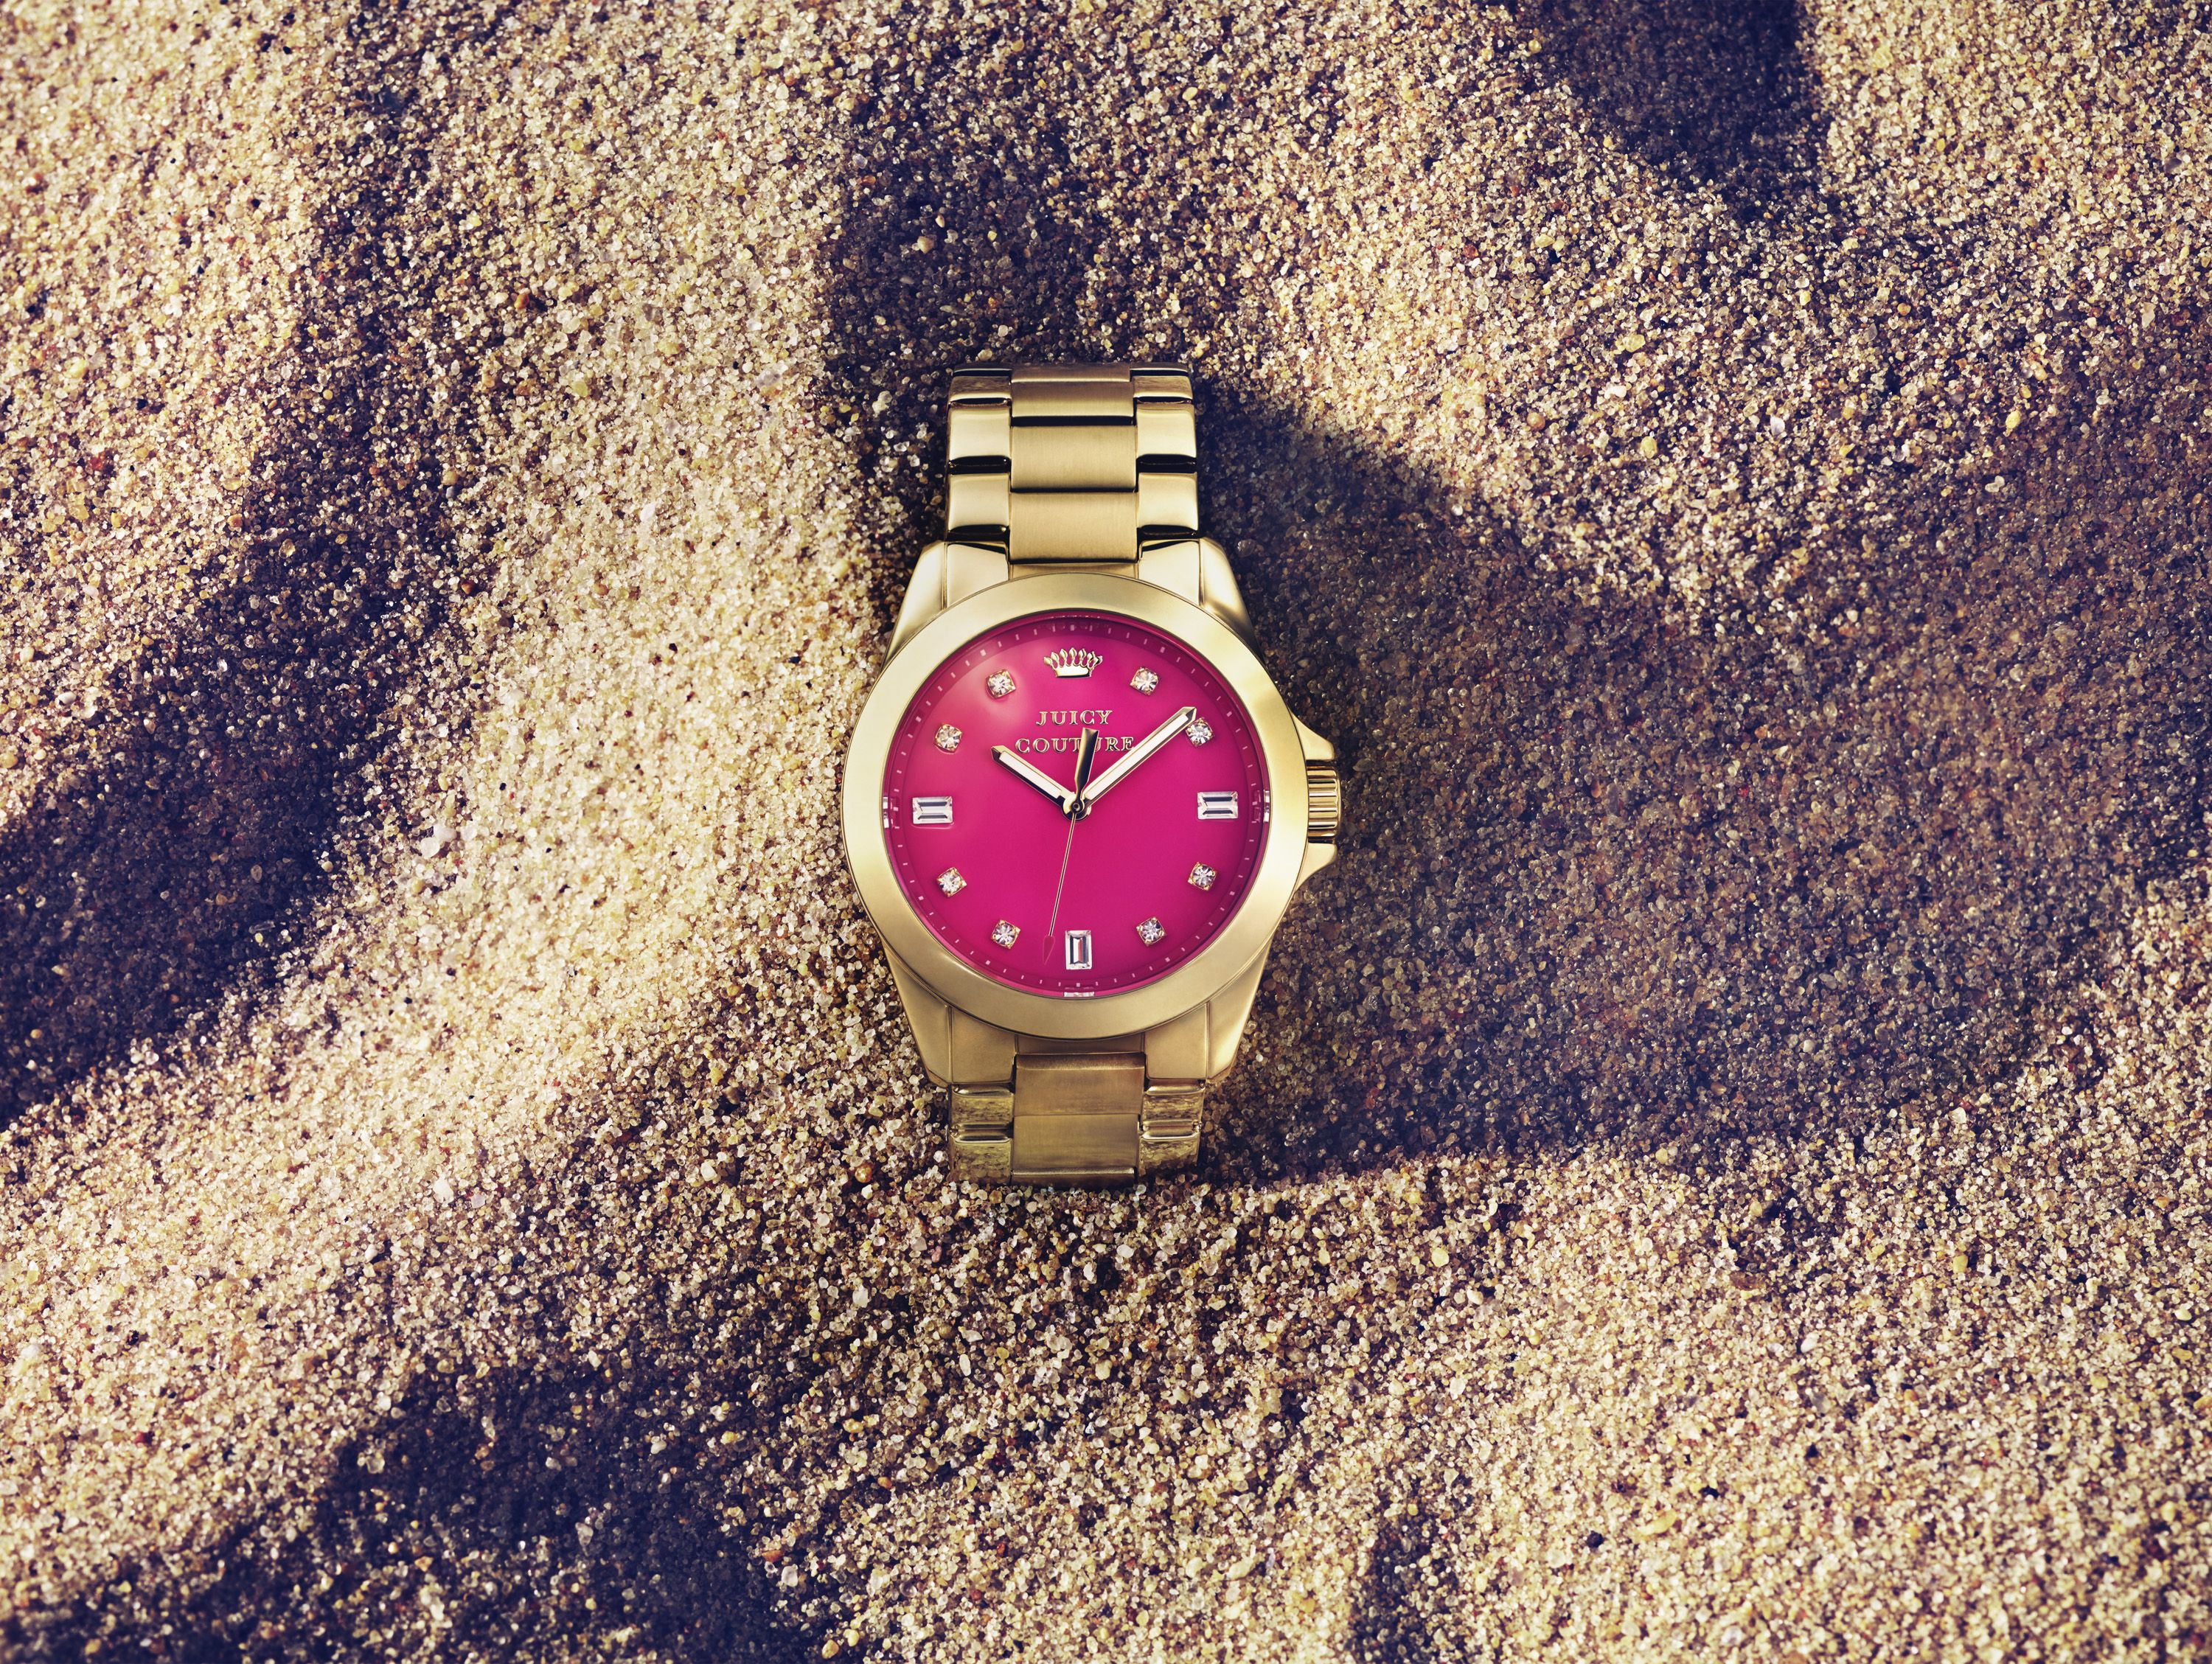 JuicyCouture timepiece with pink dial. Available at